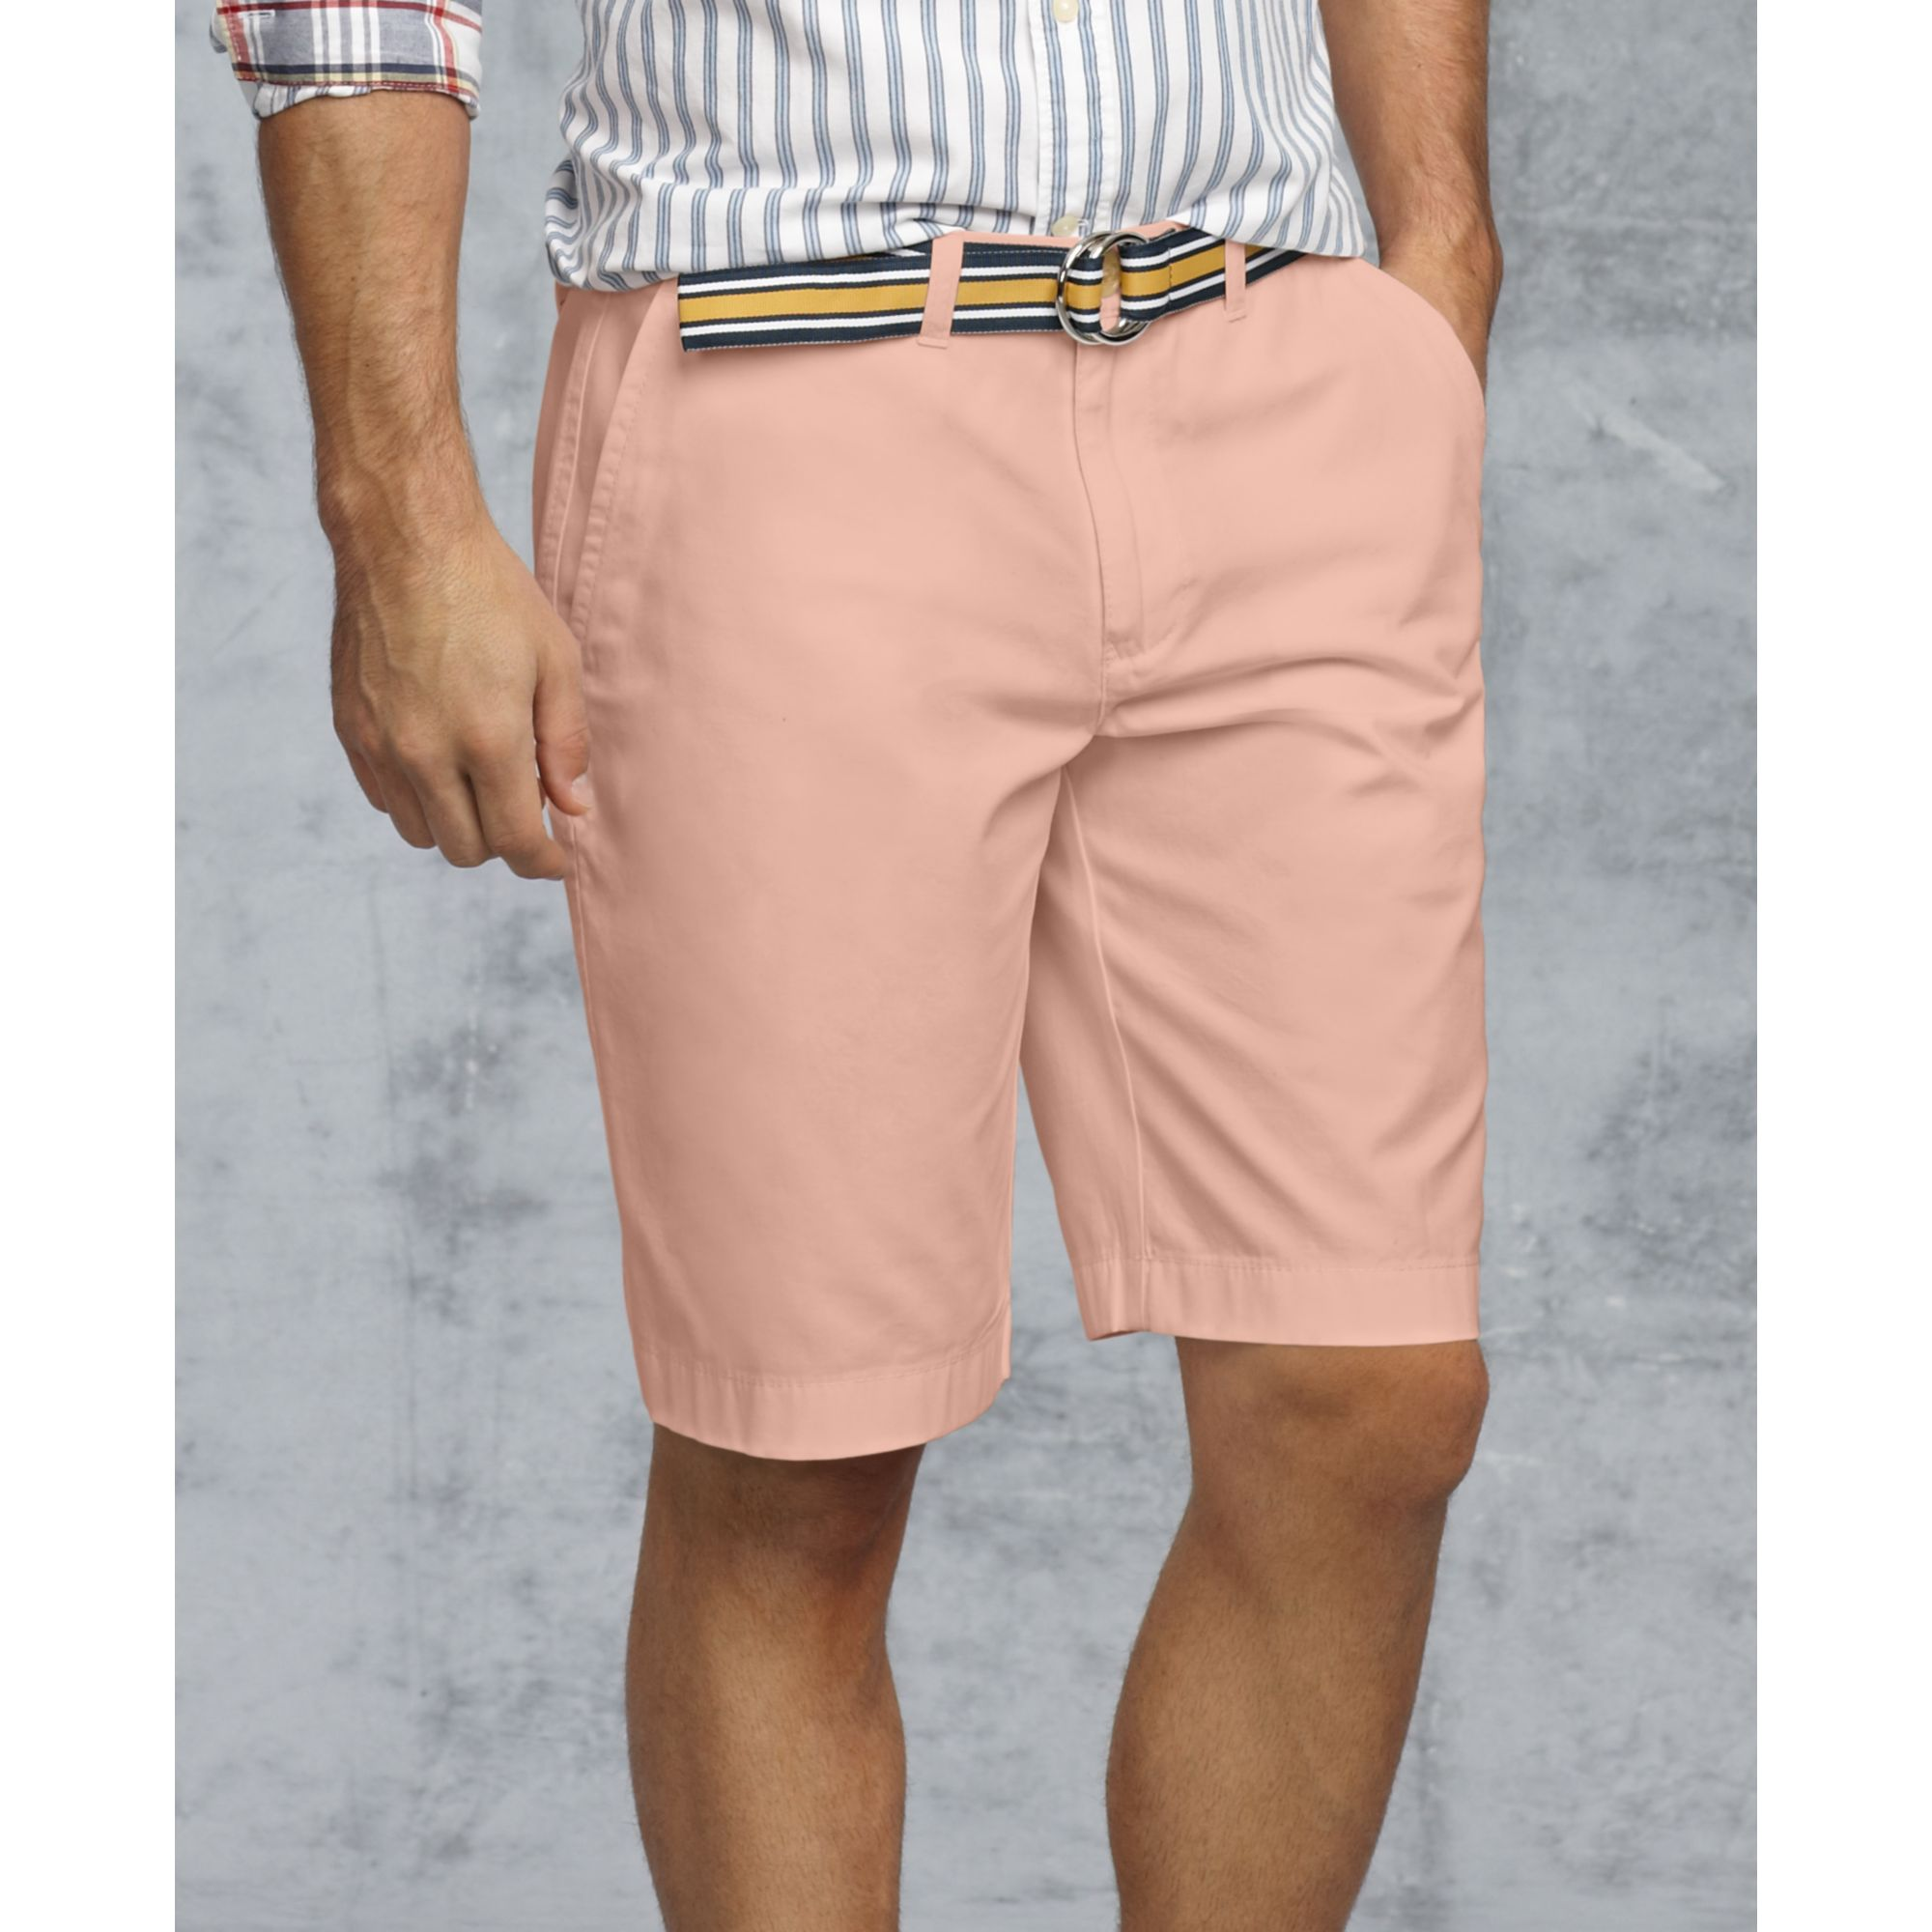 Shop for Pink Chino Shorts (yrs) at Next Australia. International shipping and returns available. Buy now!